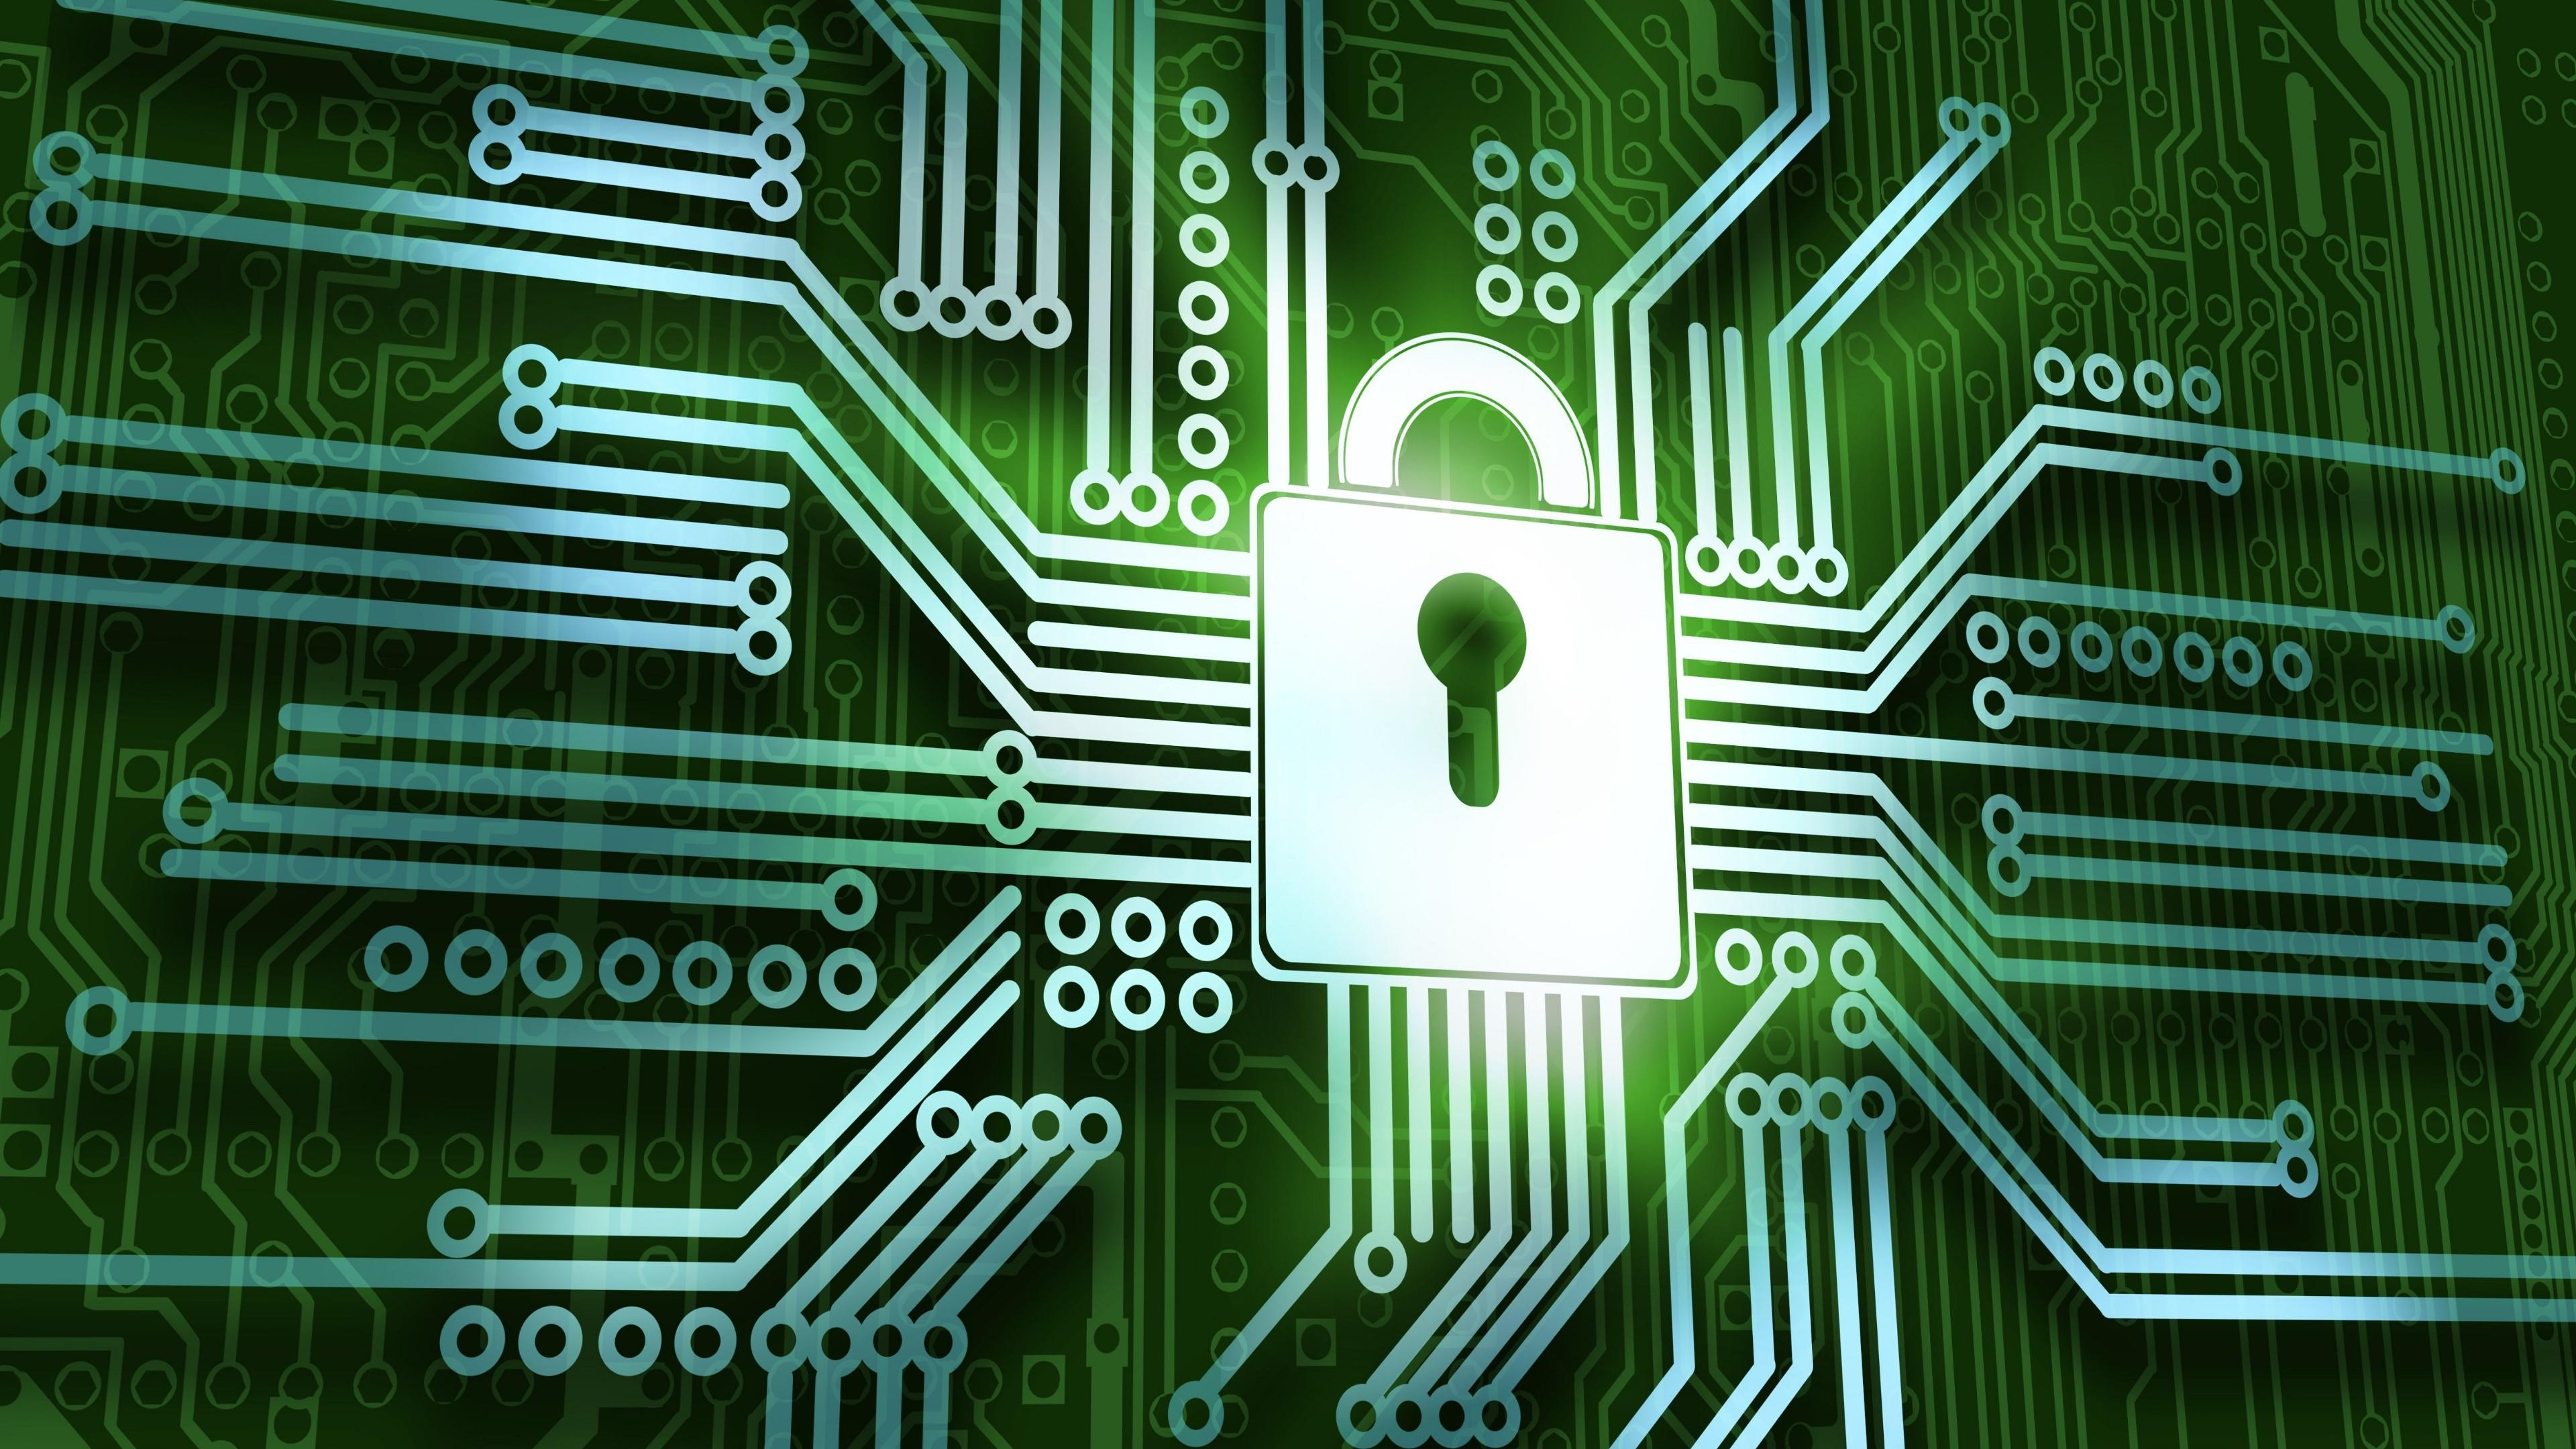 Computer security against hacking wallpaper